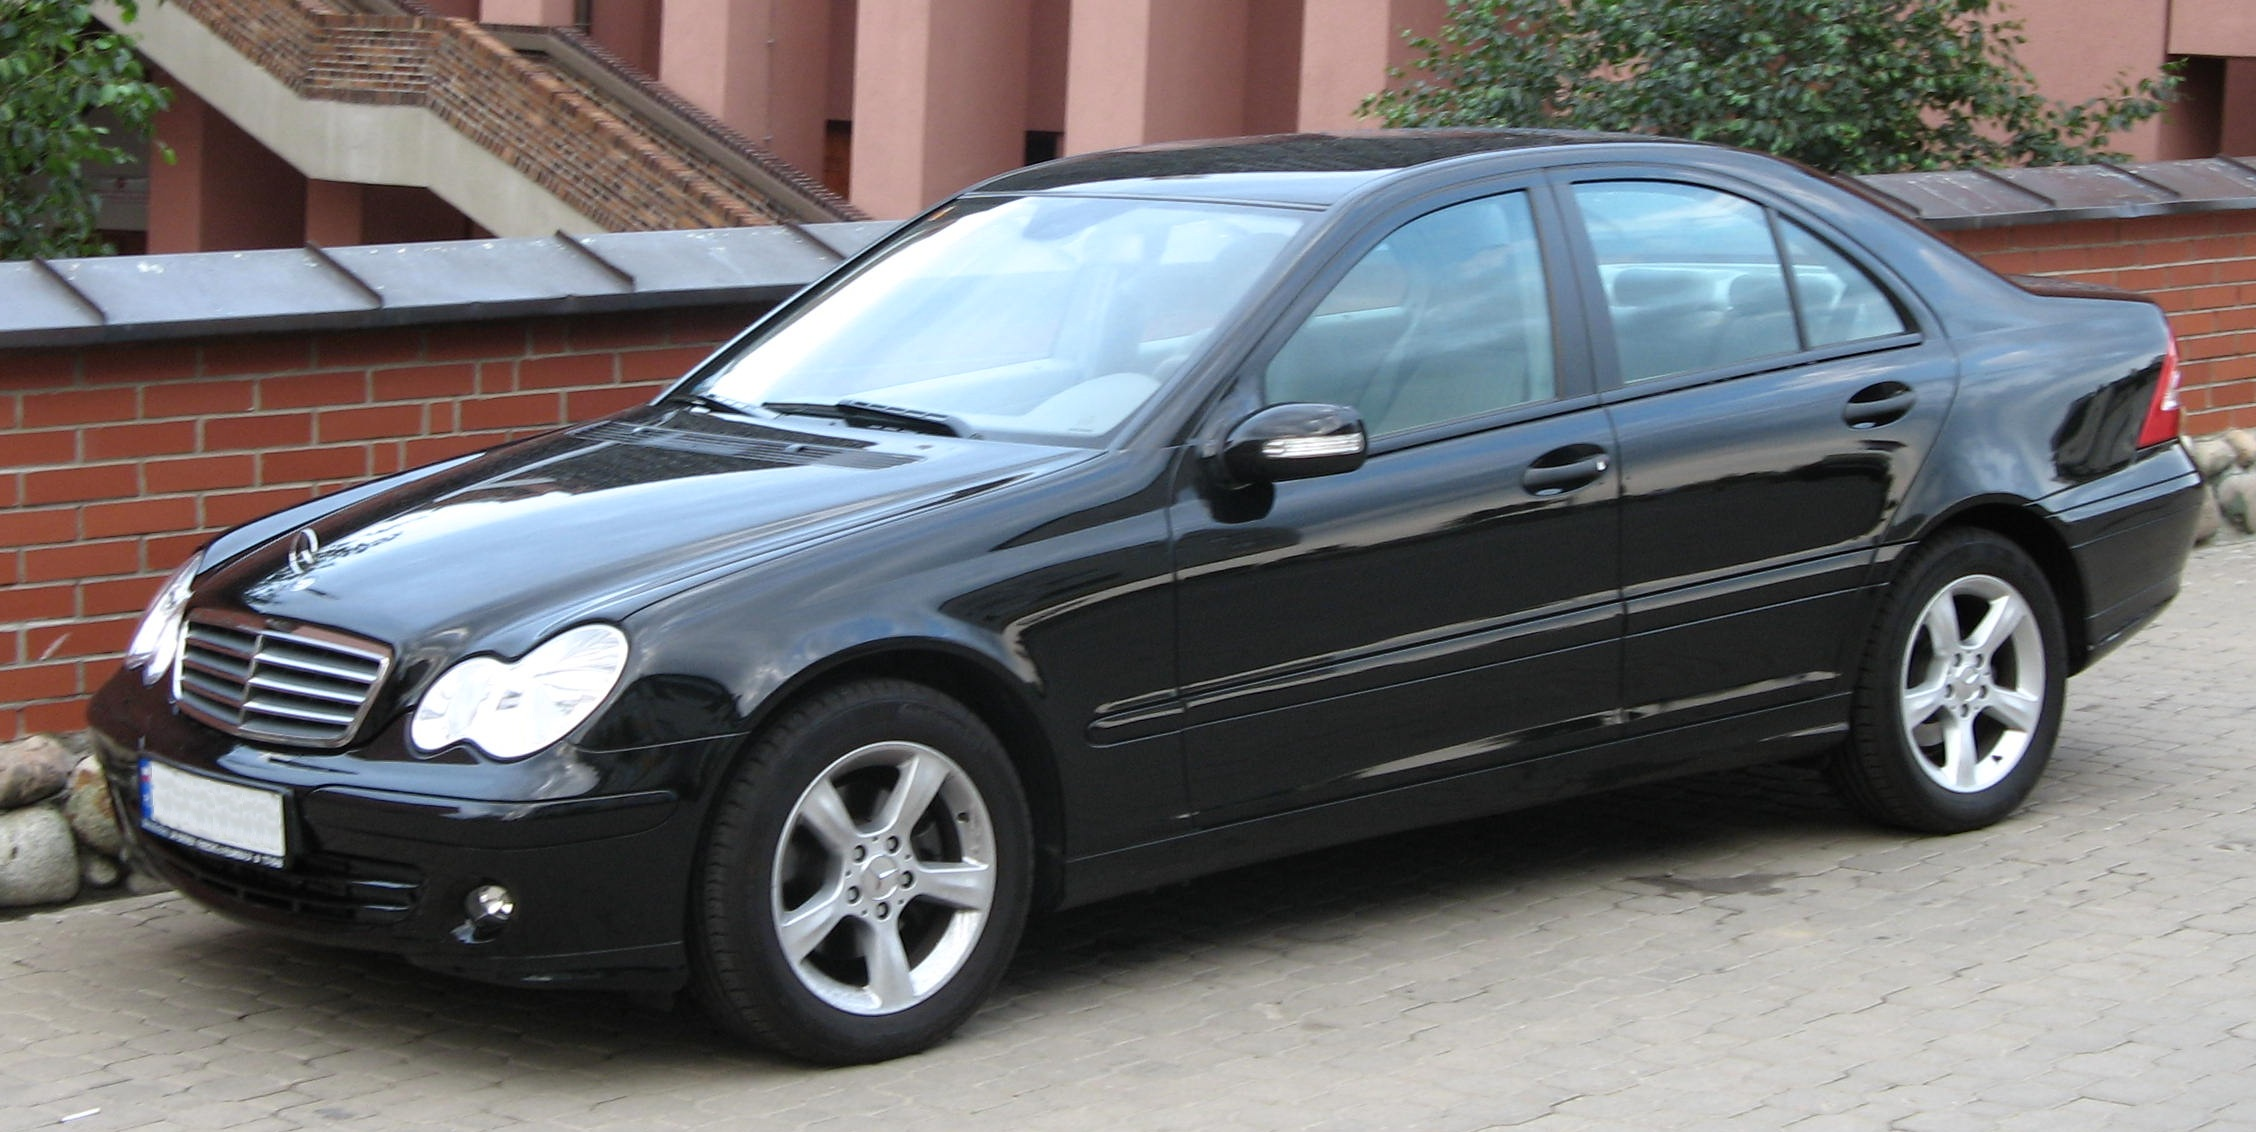 Mercedes-benz c180 photo - 1